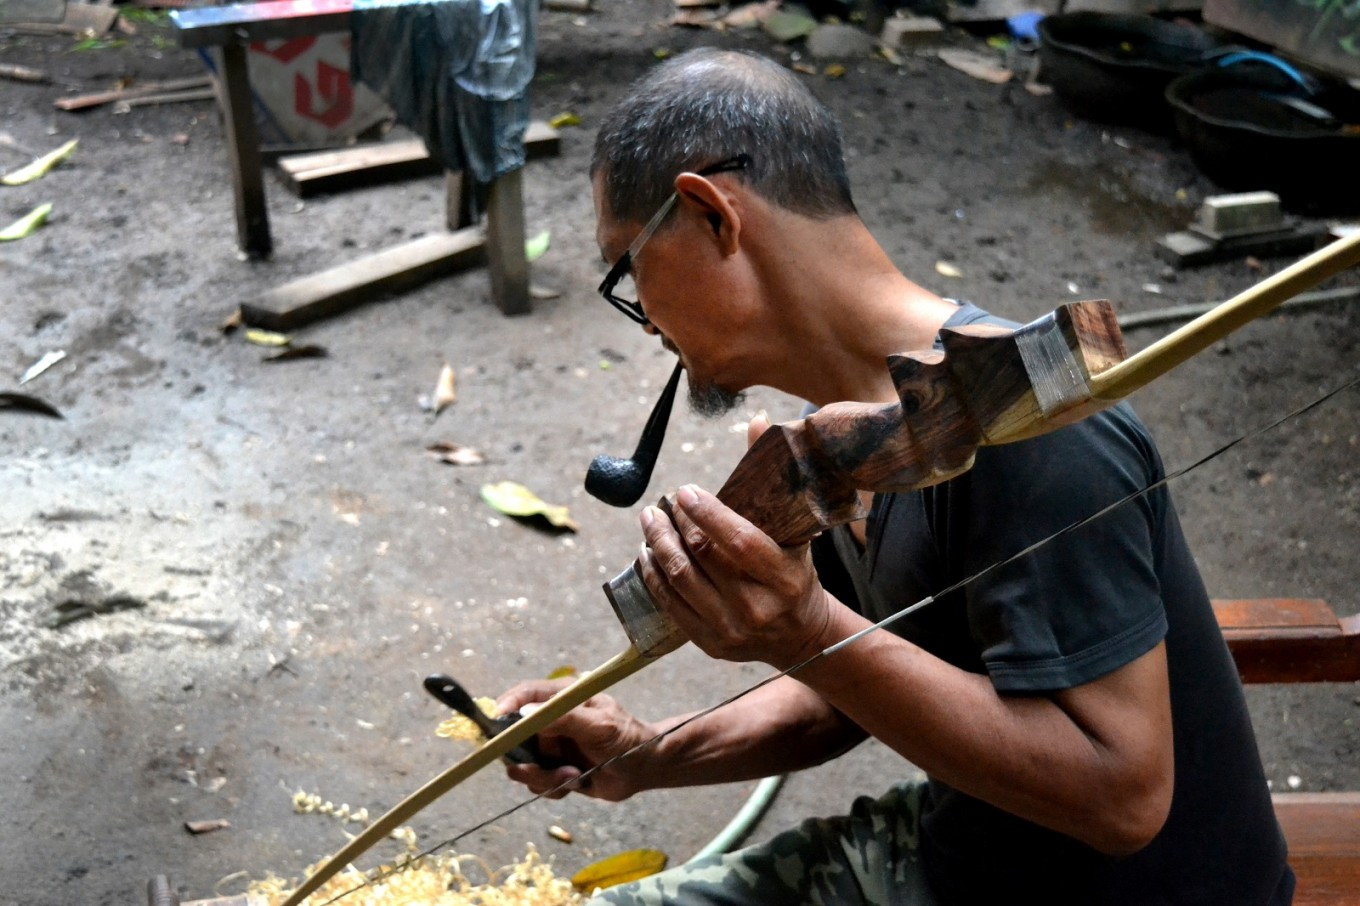 Mbah Popop's passion for traditional archery survives and he continues to practice jemparingan and craft the bows and arrows of the ancient art form.